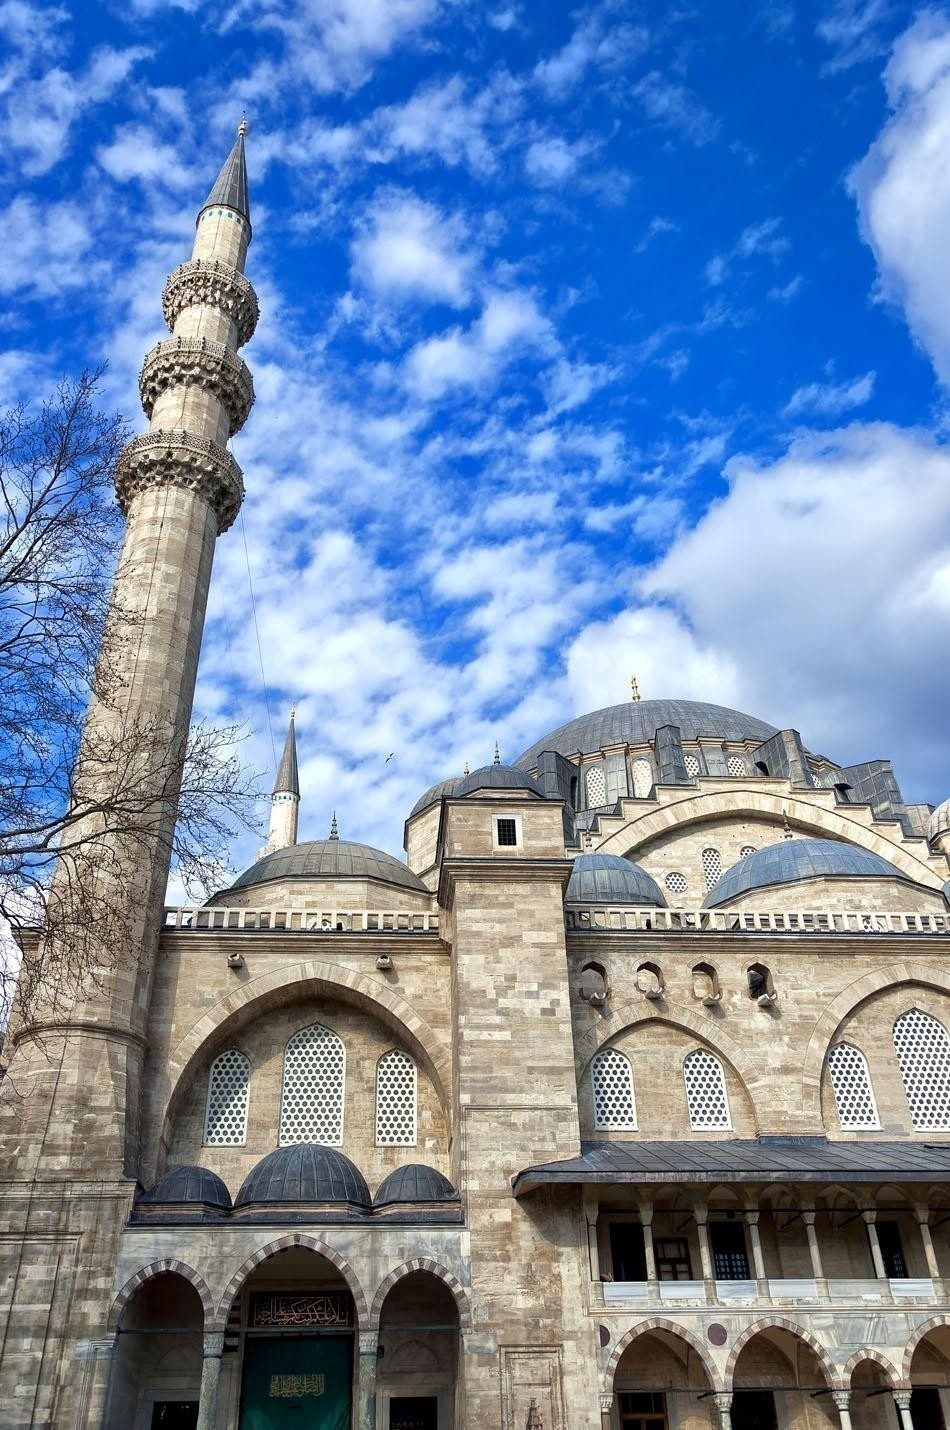 A view of the Majestic Suleiman Mosque in Istanbul, Turkey | Turkey Travel Guide